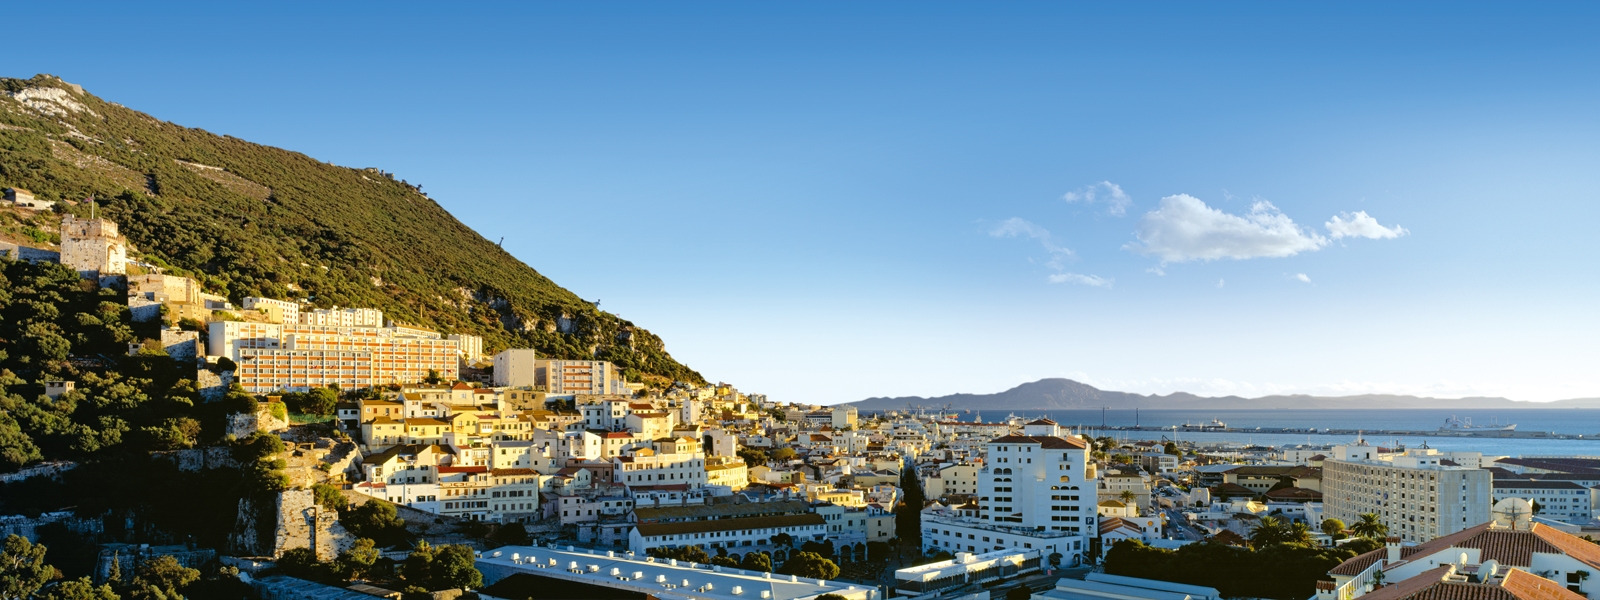 Commercial Property To Let Gibraltar